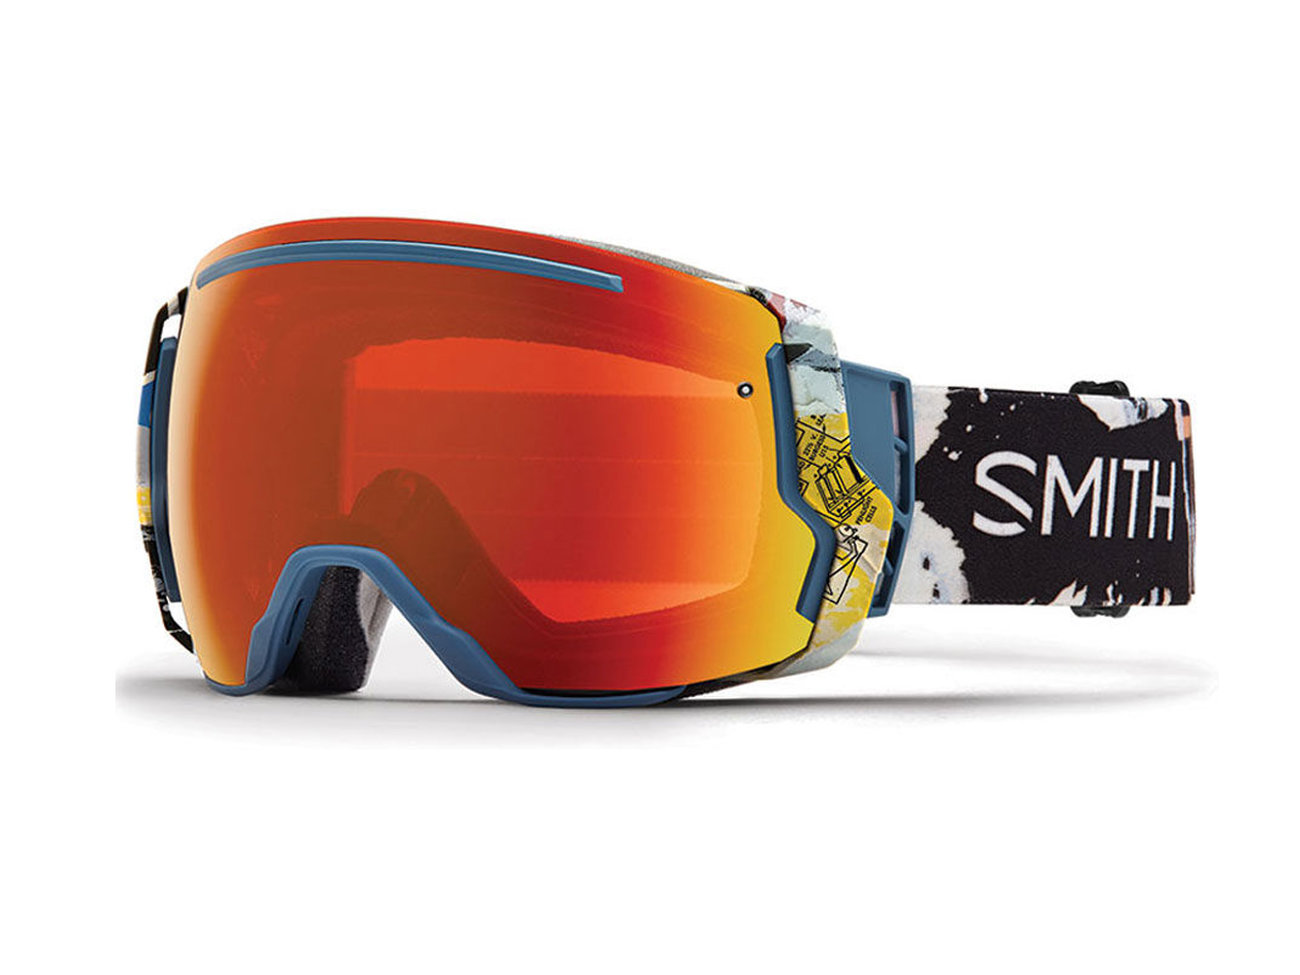 smith-optics-goggles-SKIING0816.jpg